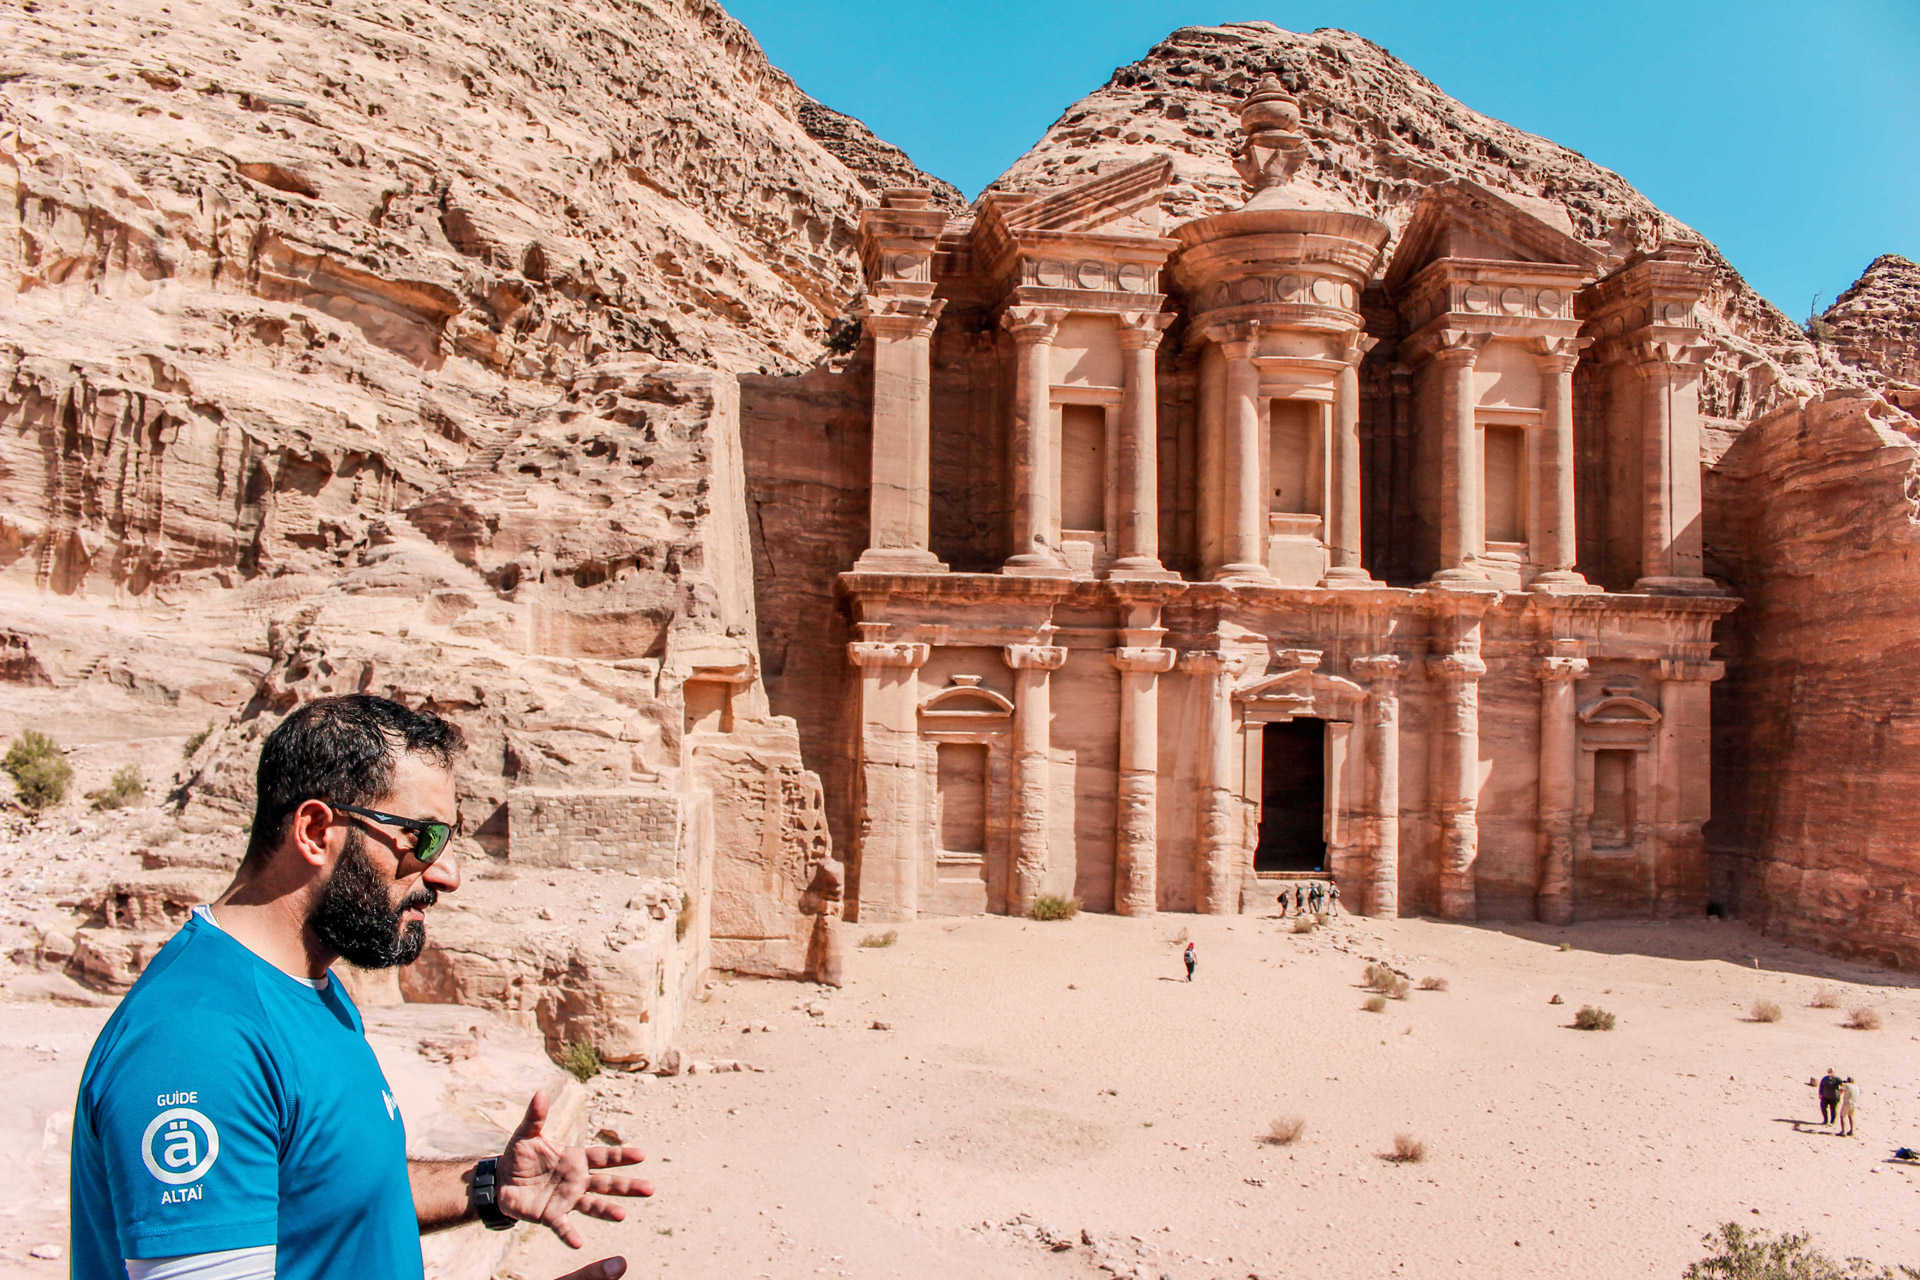 Our guide in front of the Deir in Petra